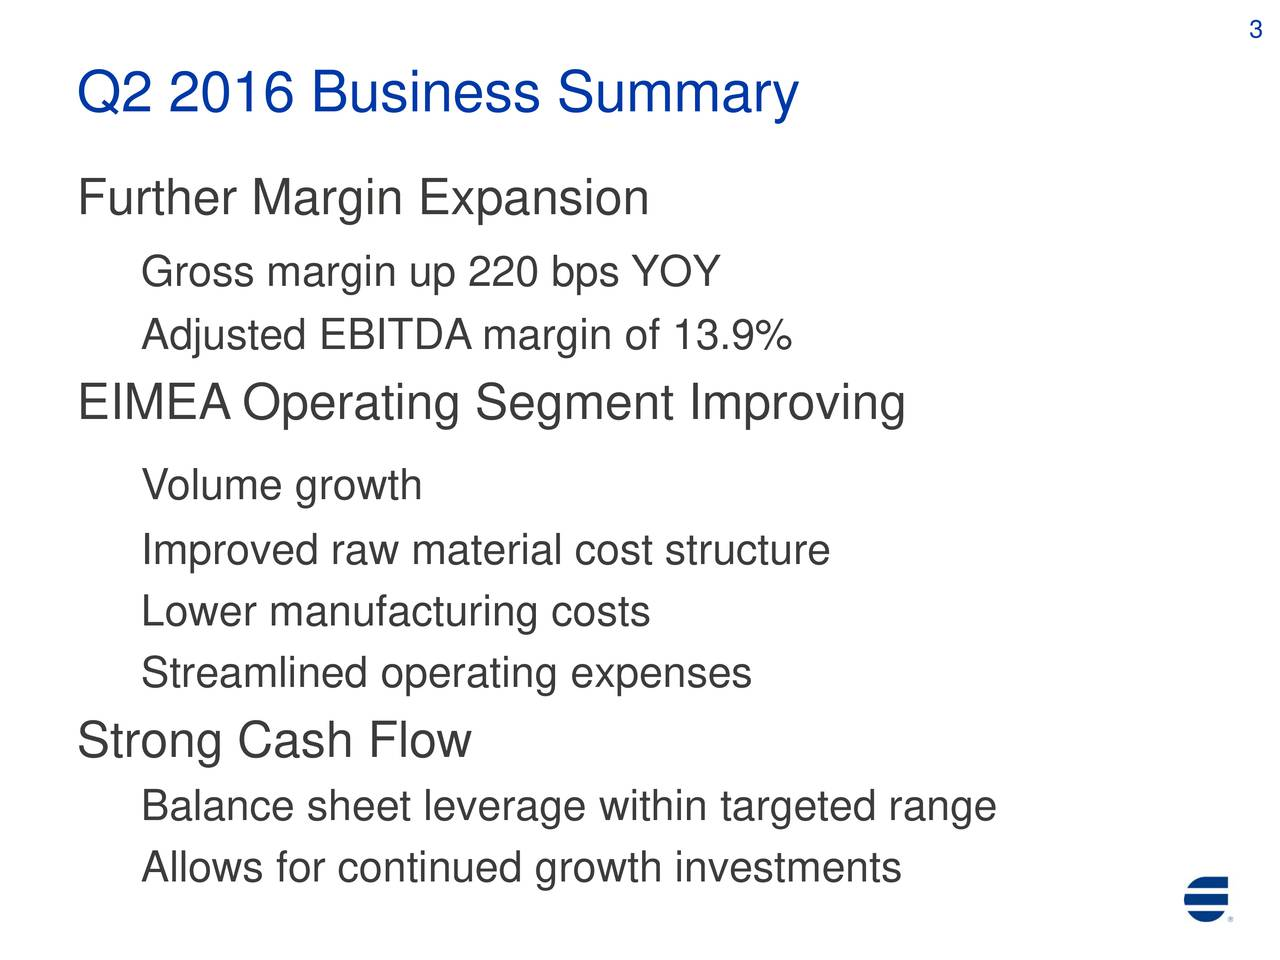 Q2 2016 Business Summary Further Margin Expansion Gross margin up 220 bps YOY Adjusted EBITDA margin of 13.9% EIMEA Operating Segment Improving Volume growth Improved raw material cost structure Lower manufacturing costs Streamlined operating expenses Strong Cash Flow Balance sheet leverage within targeted range Allows for continued growth investments